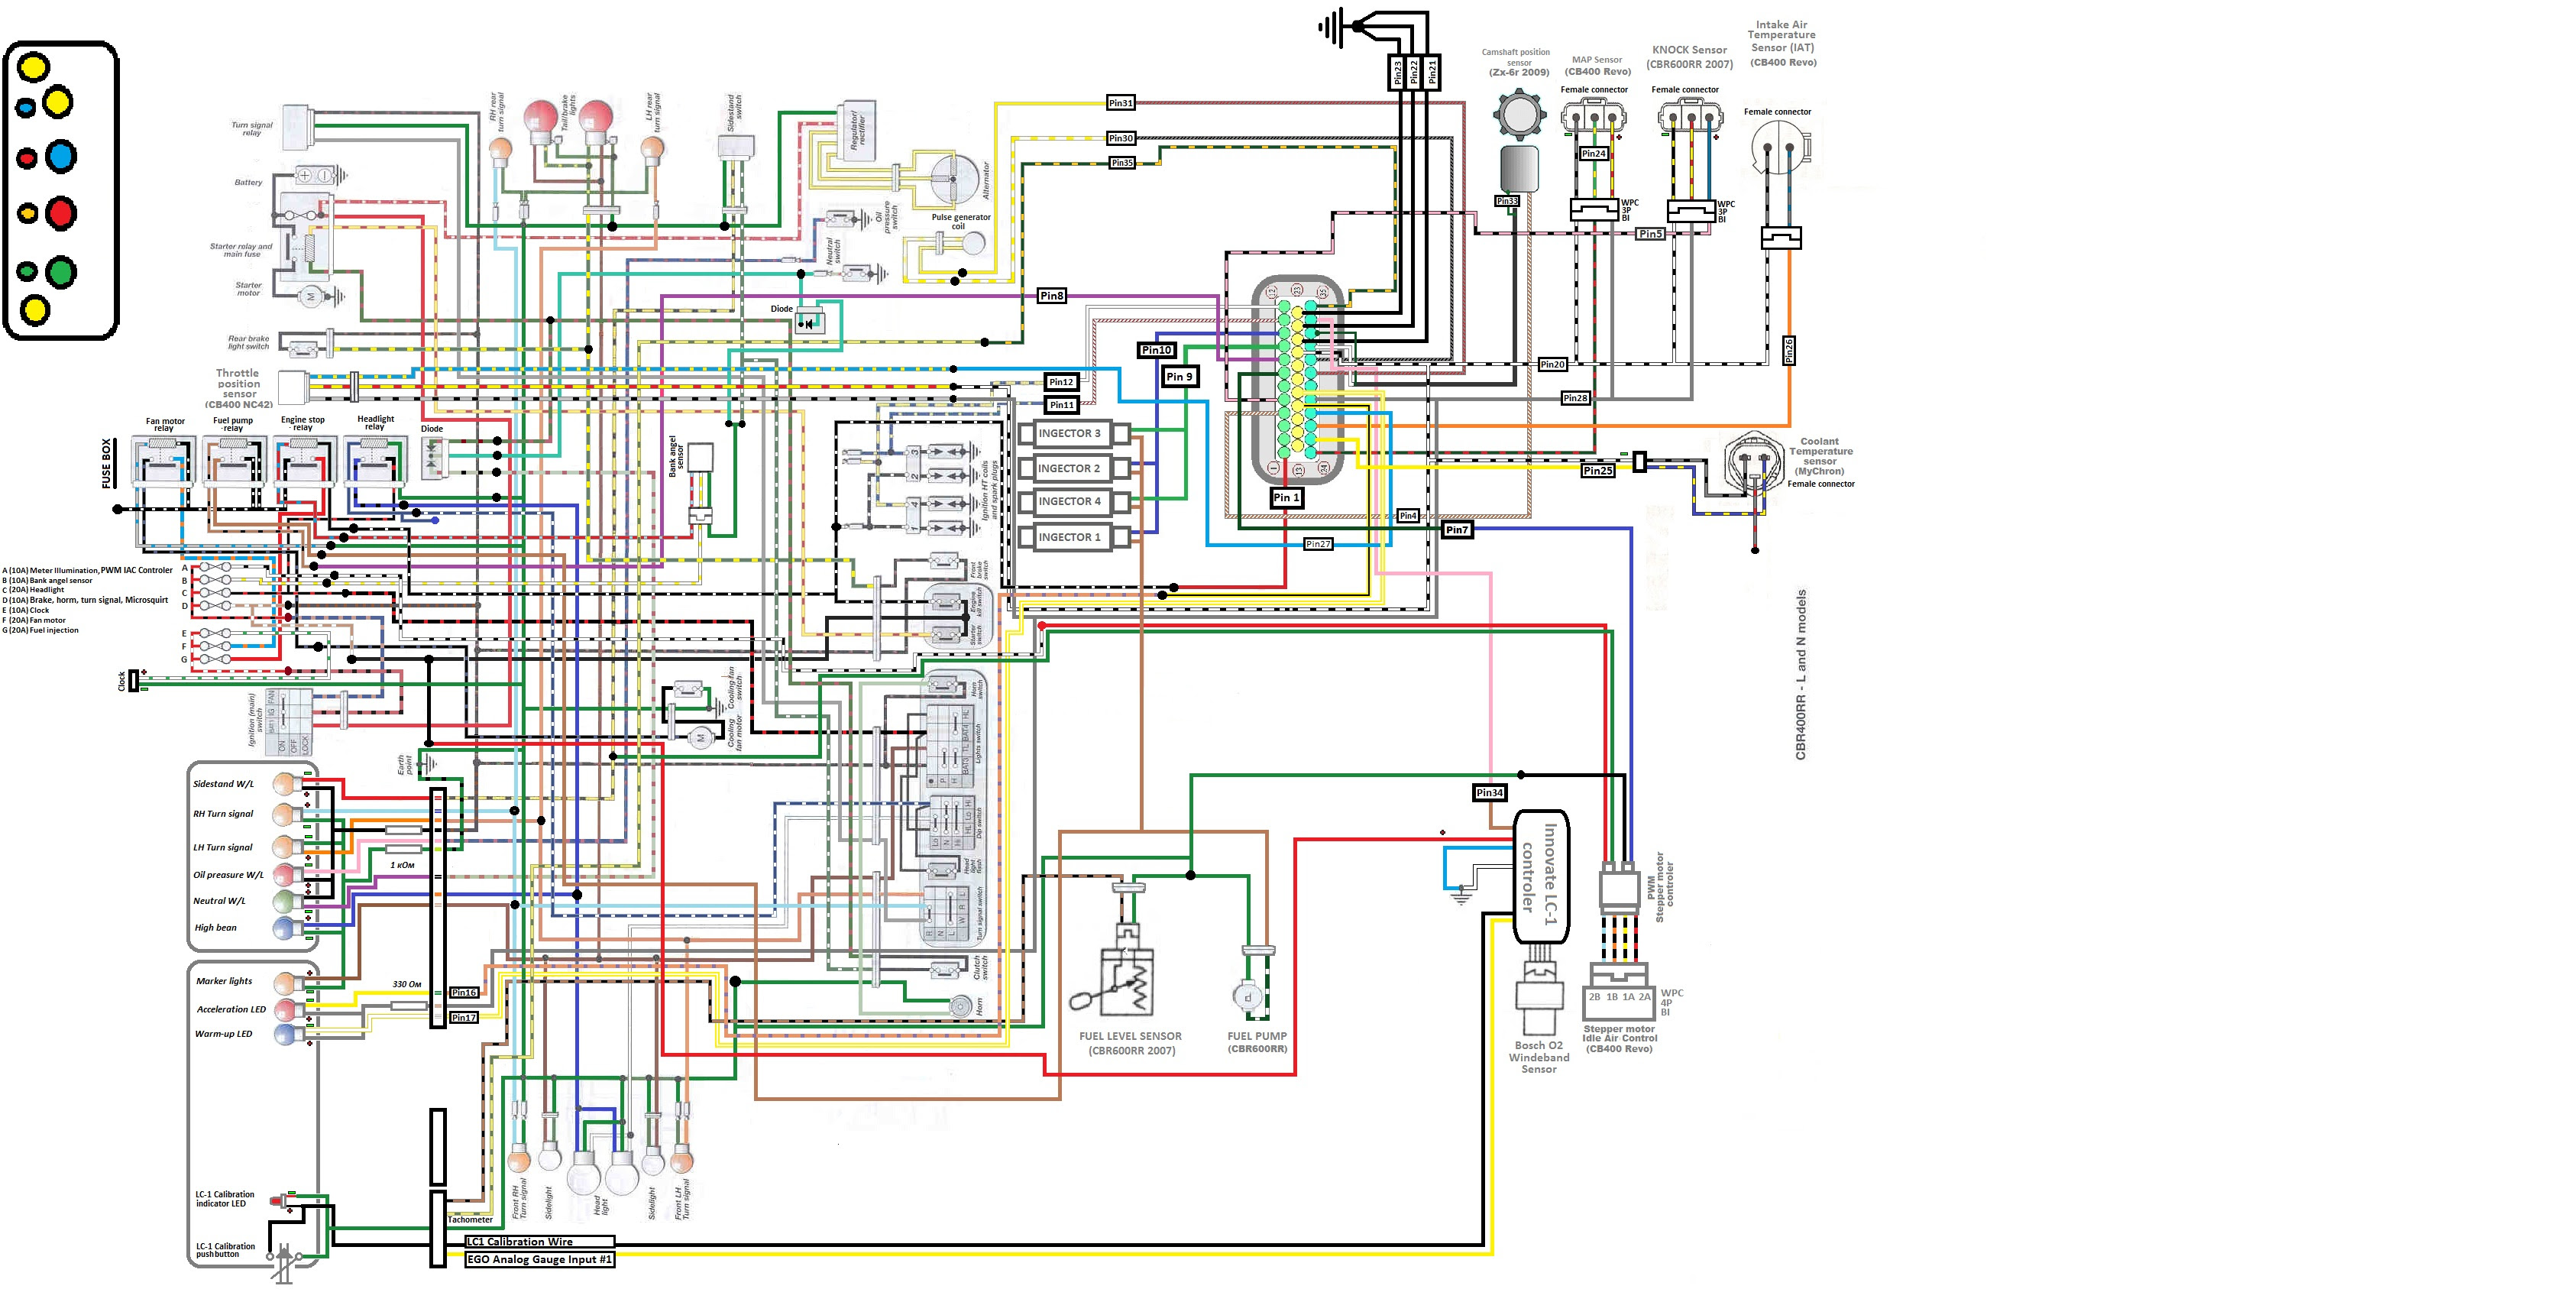 Honda Nc31 Wiring Diagram Wiring Diagram Series A Series A Pasticceriagele It